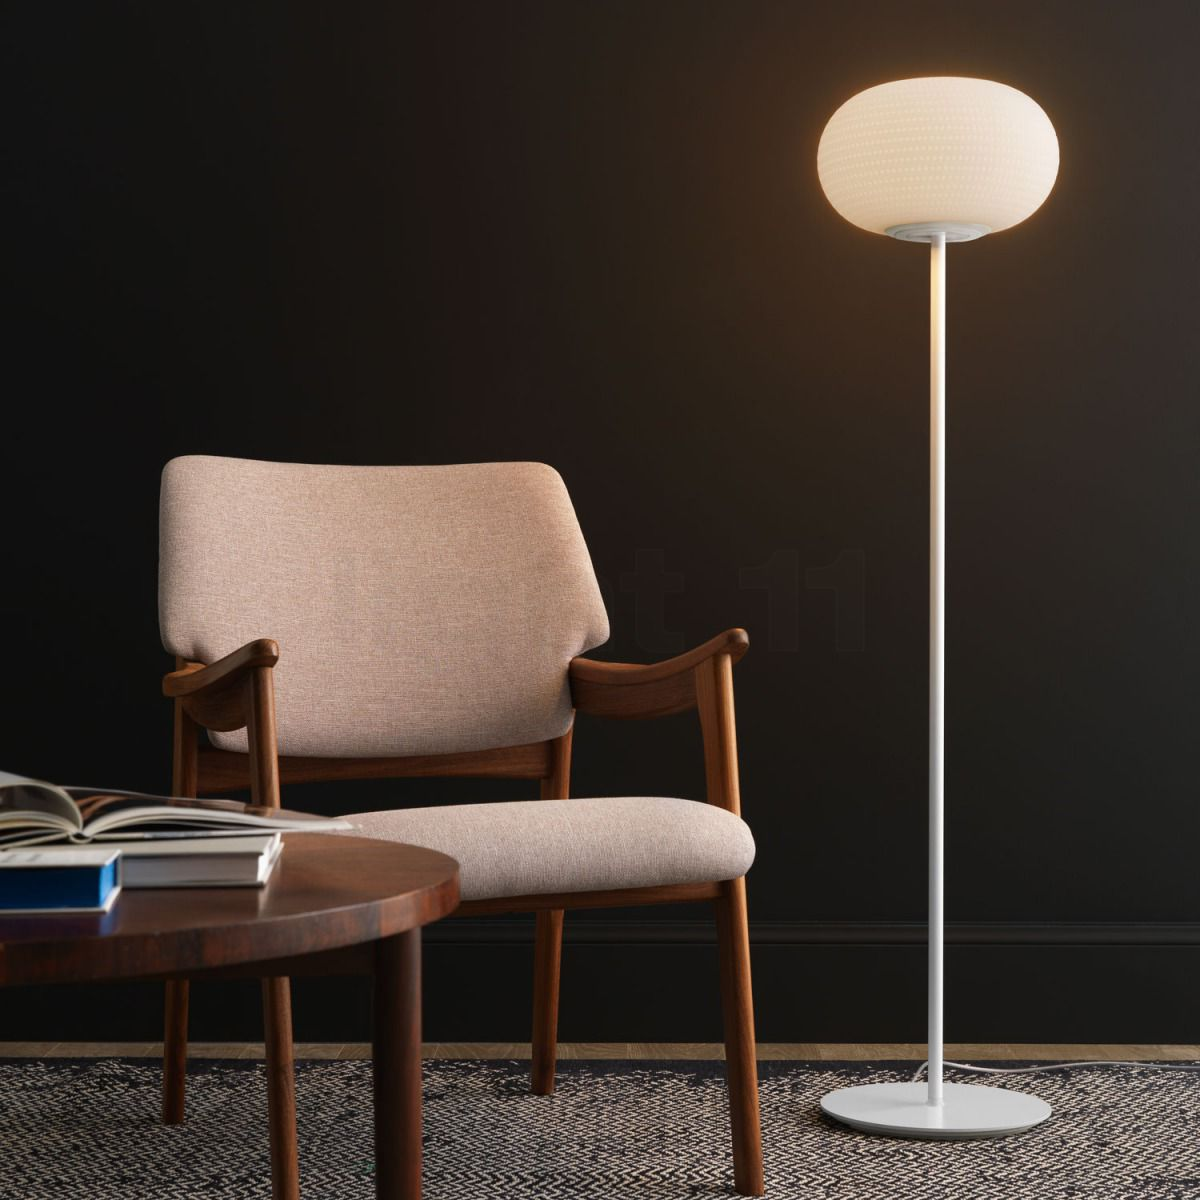 & Buy Fontana Arte Bianca Floor lamp medium LED at light11.eu